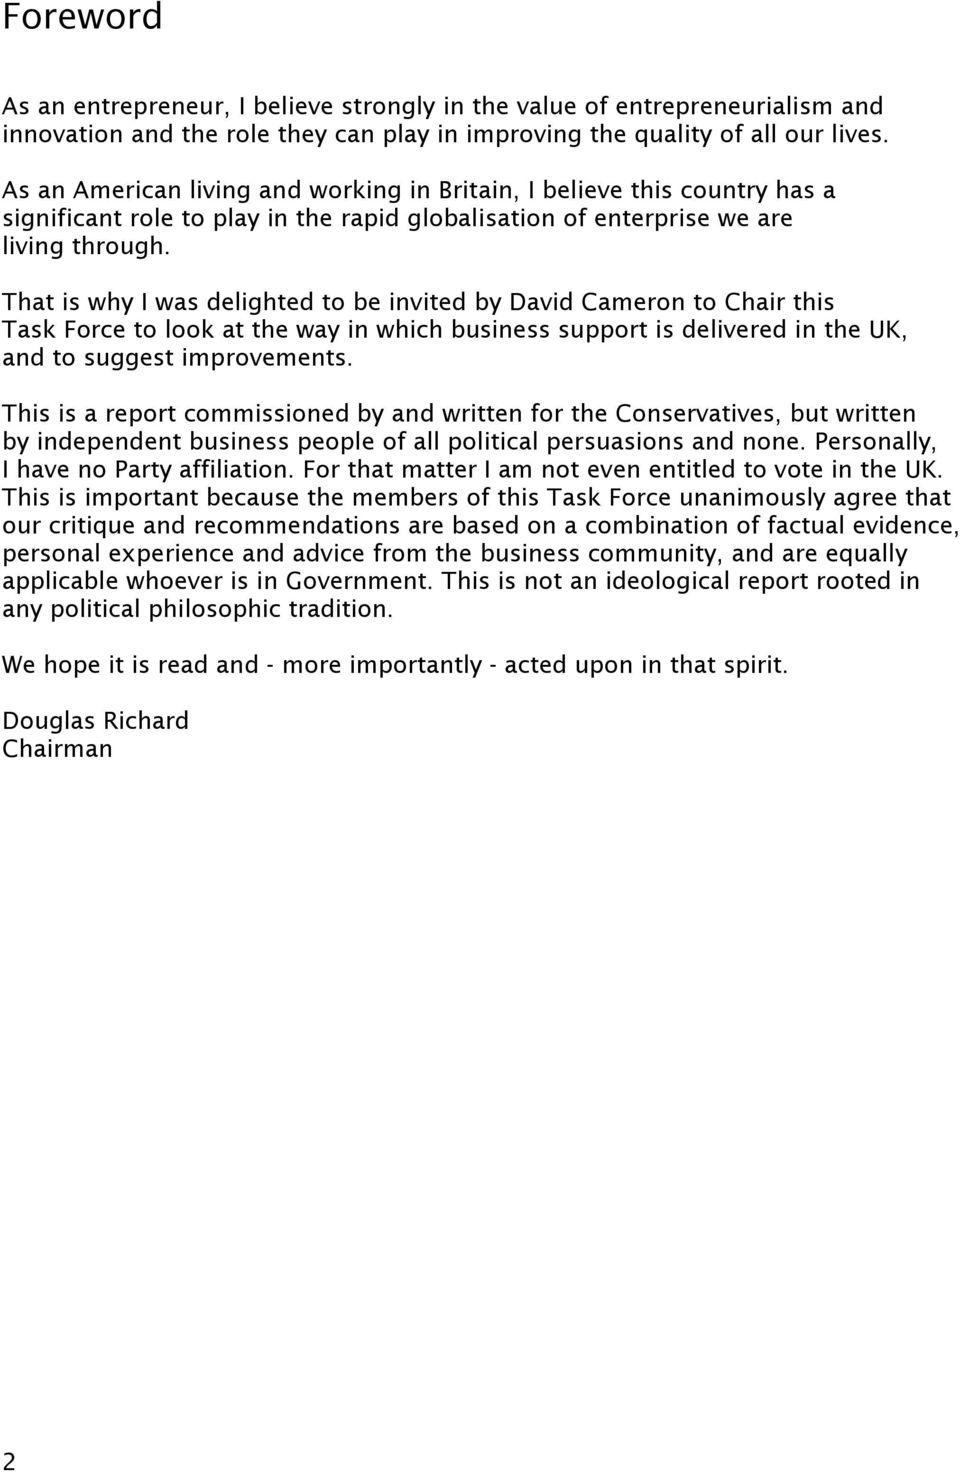 That is why I was delighted to be invited by David Cameron to Chair this Task Force to look at the way in which business support is delivered in the UK, and to suggest improvements.